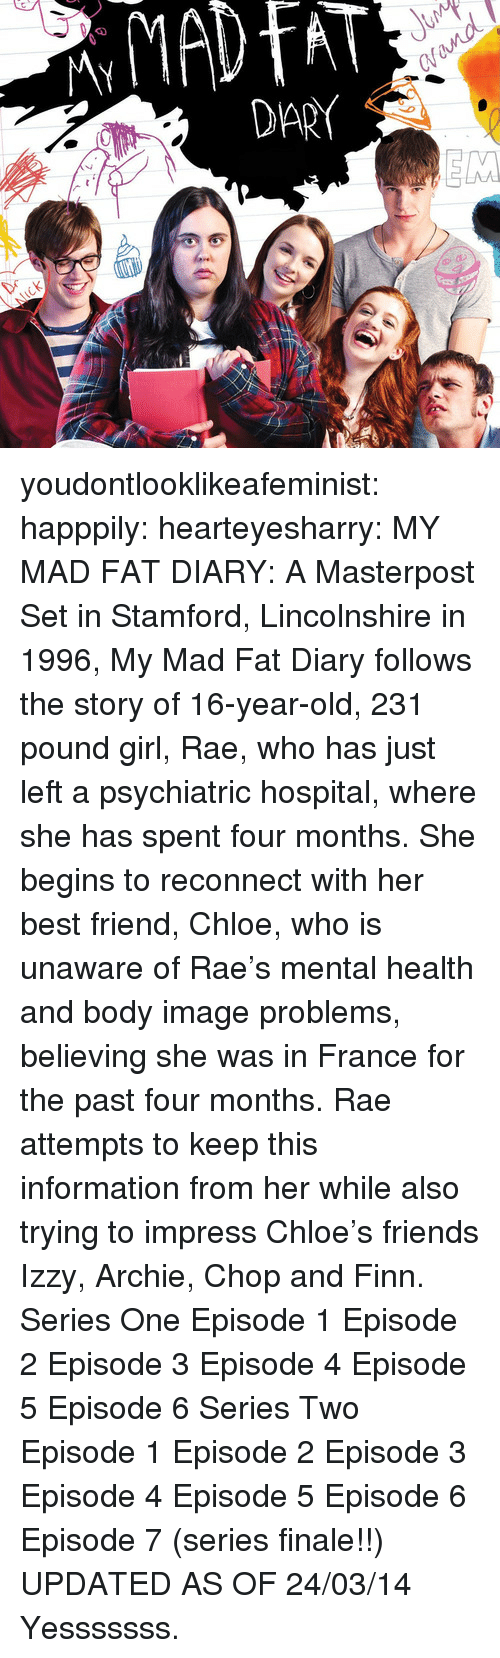 episode-5: CV  DARY youdontlooklikeafeminist:   happpily:  hearteyesharry:  MY MAD FAT DIARY: A Masterpost  Set in Stamford, Lincolnshire in 1996, My Mad Fat Diary follows the story of 16-year-old, 231 pound girl, Rae, who has just left a psychiatric hospital, where she has spent four months. She begins to reconnect with her best friend, Chloe, who is unaware of Rae's mental health and body image problems, believing she was in France for the past four months. Rae attempts to keep this information from her while also trying to impress Chloe's friends Izzy, Archie, Chop and Finn. Series One Episode 1 Episode 2 Episode 3 Episode 4 Episode 5 Episode 6 Series Two Episode 1 Episode 2 Episode 3 Episode 4 Episode 5 Episode 6  Episode 7 (series finale!!)  UPDATED AS OF 24/03/14  Yesssssss.